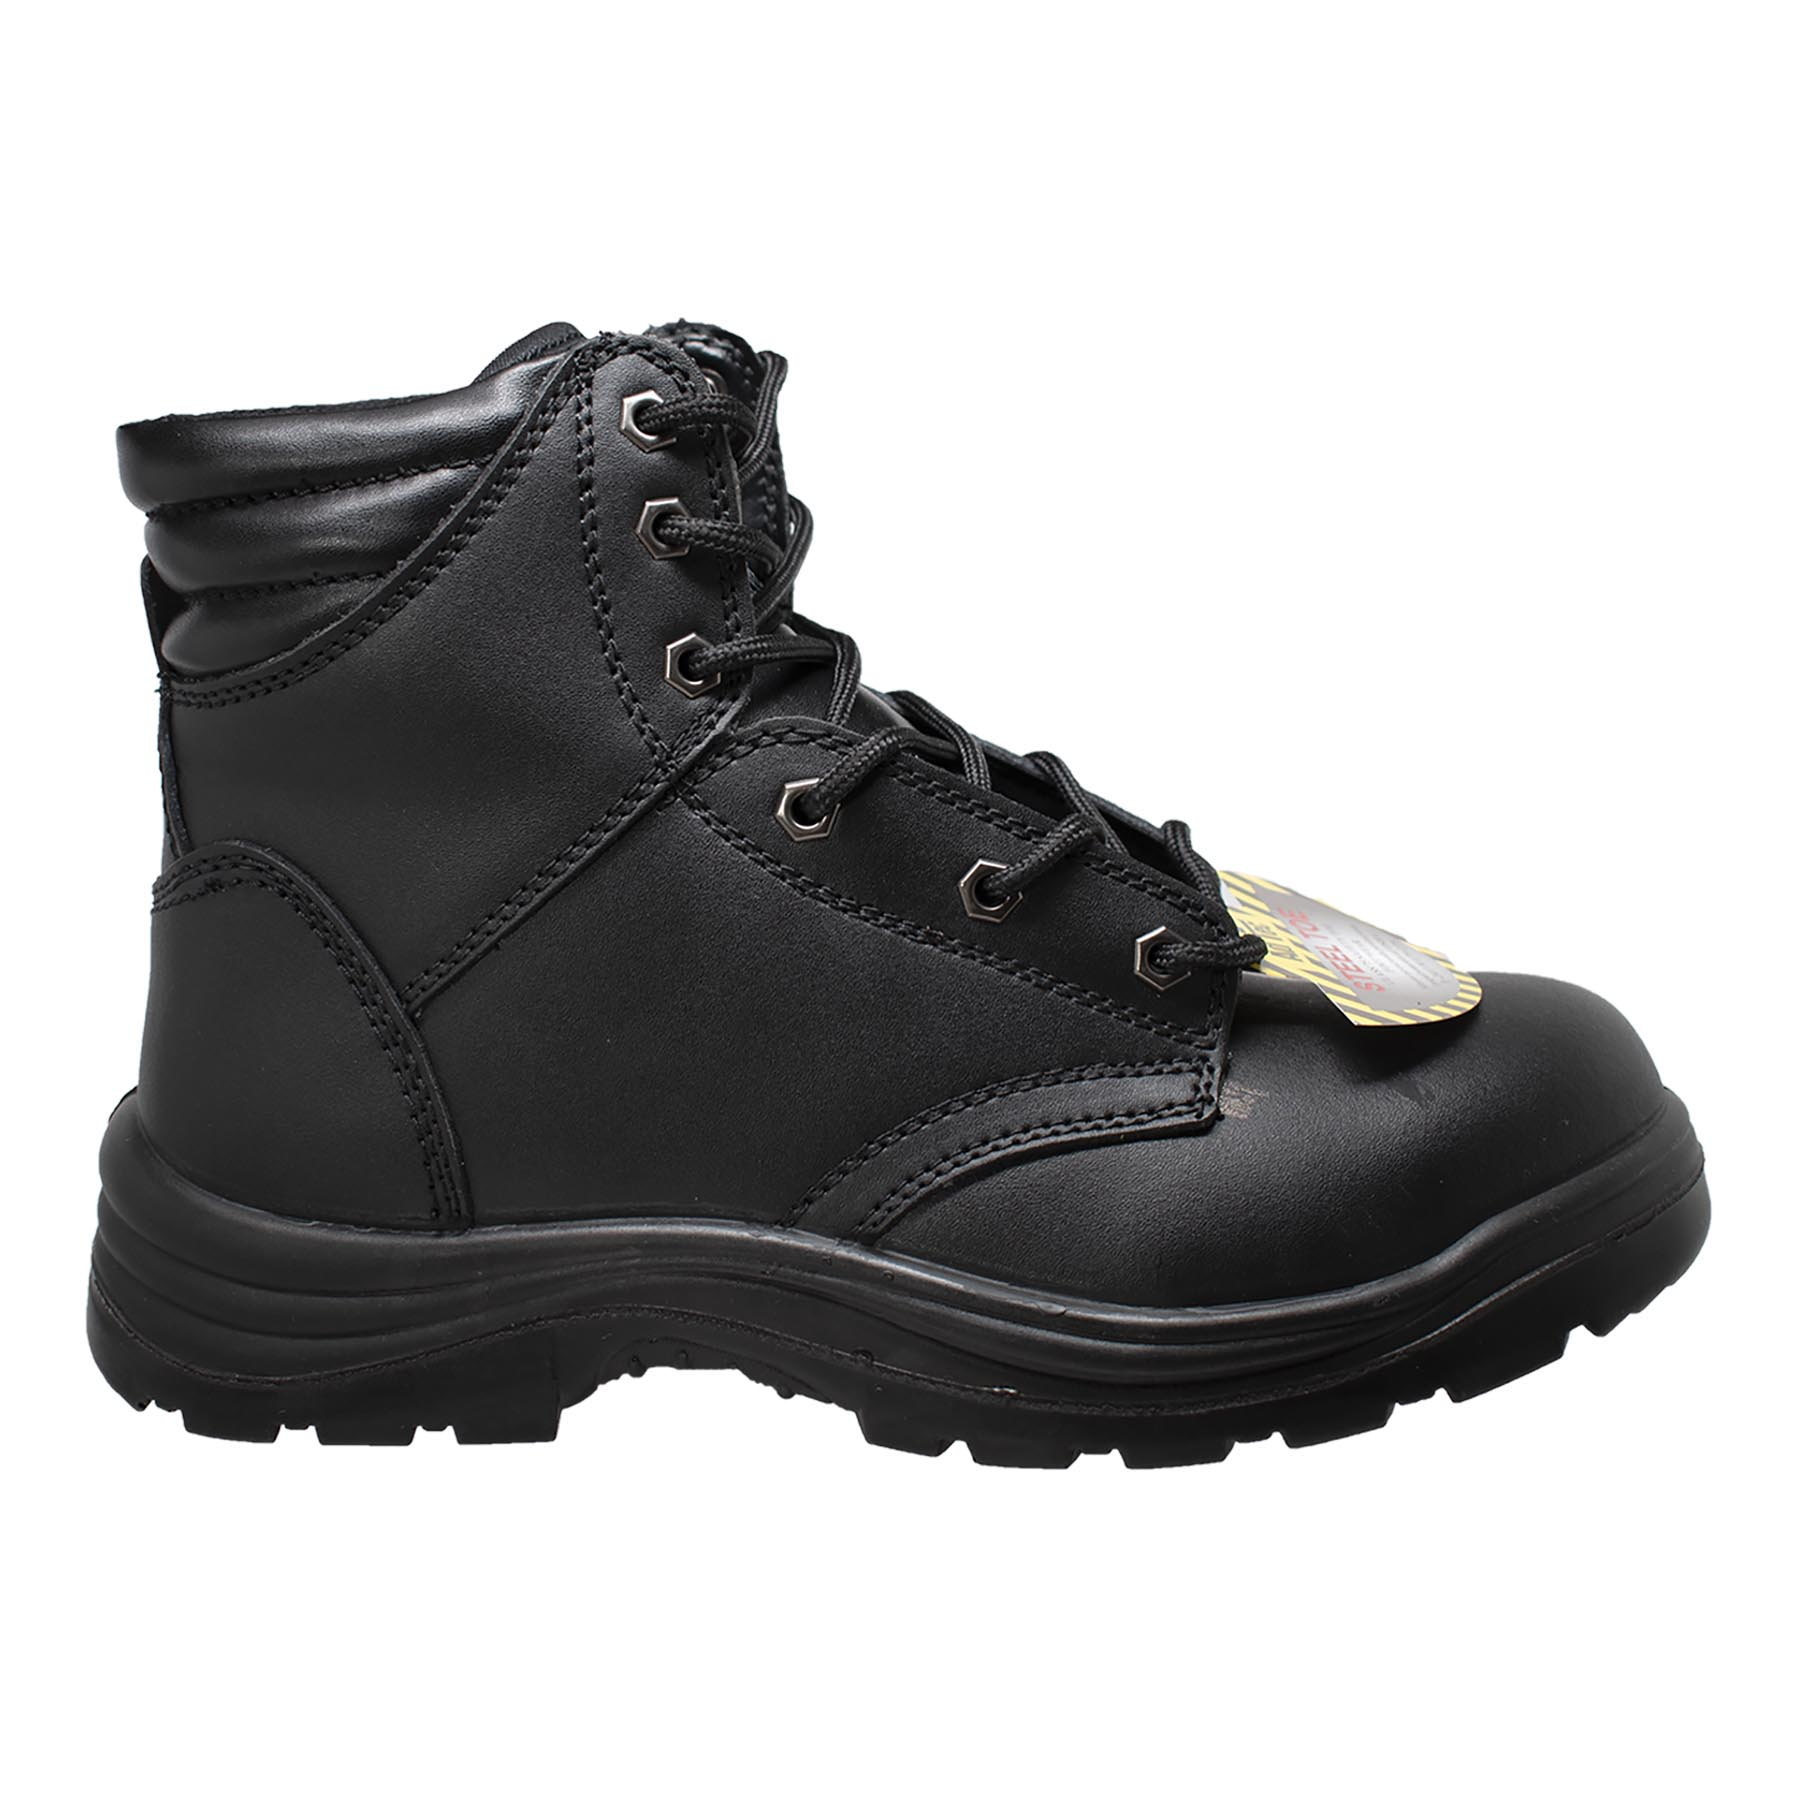 "Men's 6"" Black Steel Toe Work Boots - Shop Genuine Leather men & women's boots online 